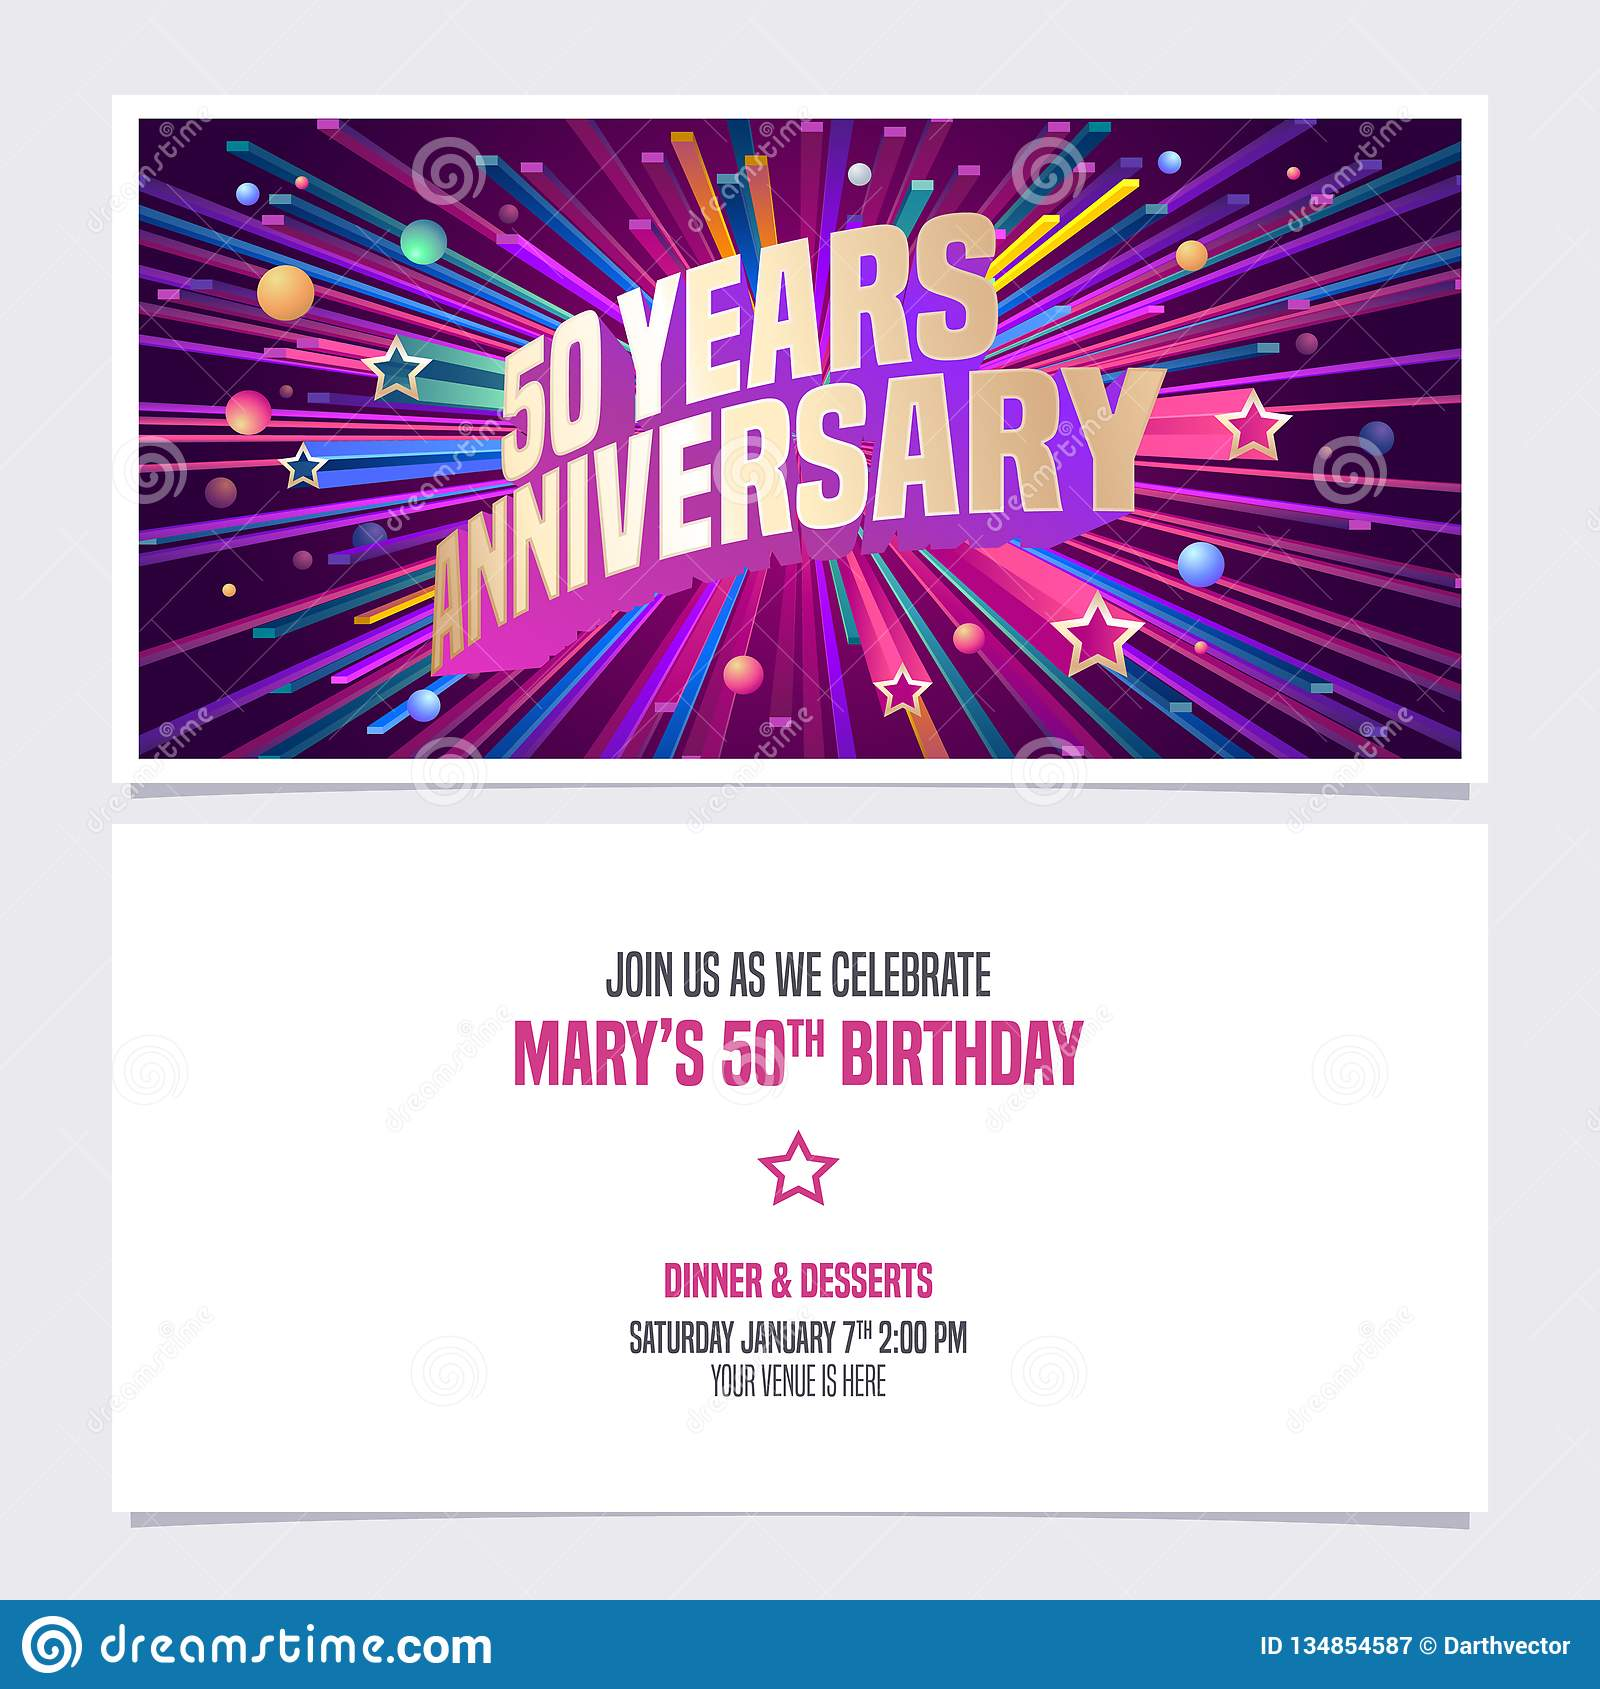 50 Years Anniversary Invitation Vector Illustration Graphic Design Element With Bright Fireworks For 50th Birthday Card Party Invite